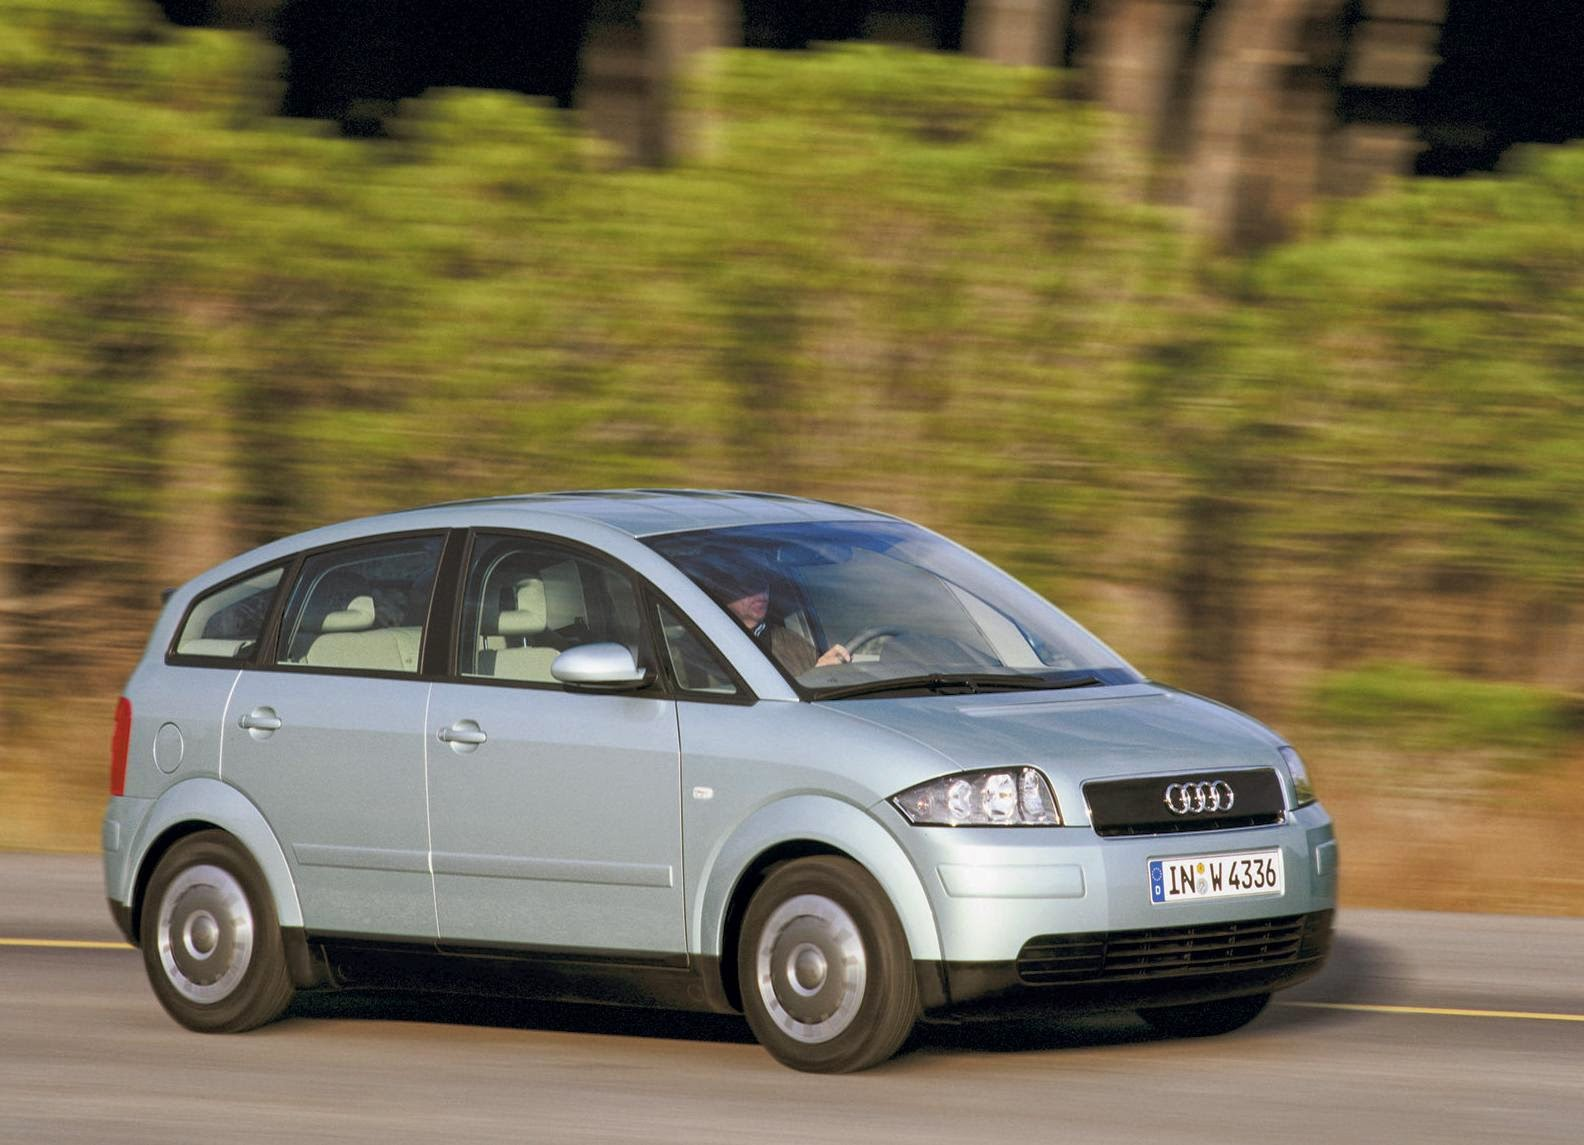 Audi A2 2001 Fullscreen Wallpaper